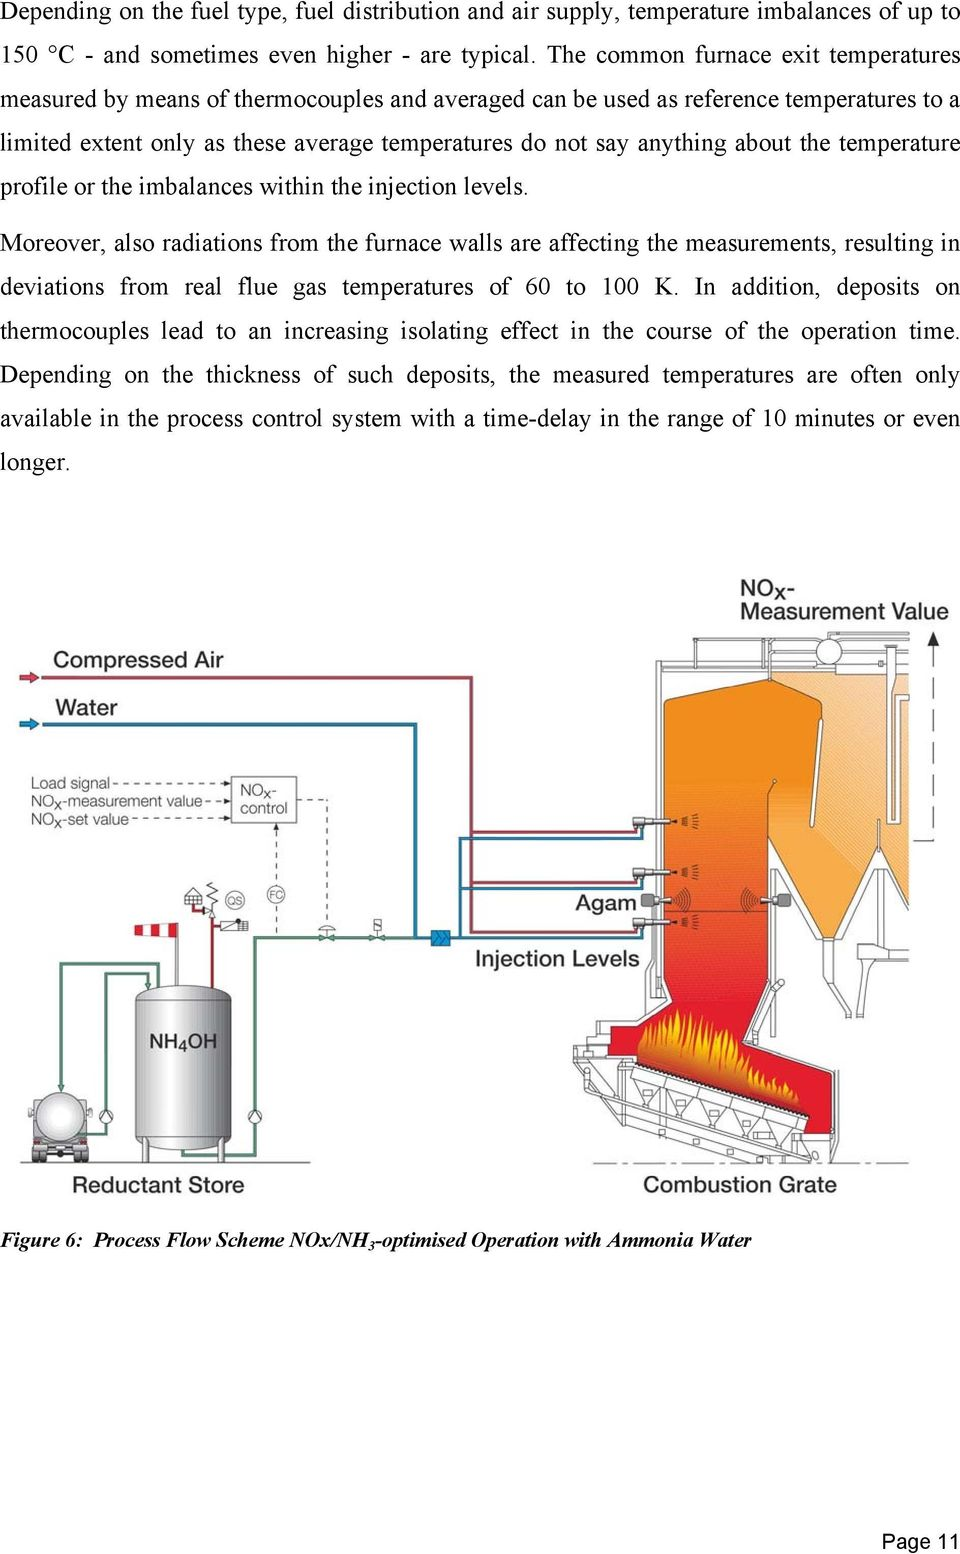 Mehldau Steinfath Umwelttechnik Gmbh Sncr Process Best Flow Diagram Besides Gas Forced Air Furnace On Generator About The Temperature Profile Or Imbalances Within Injection Levels